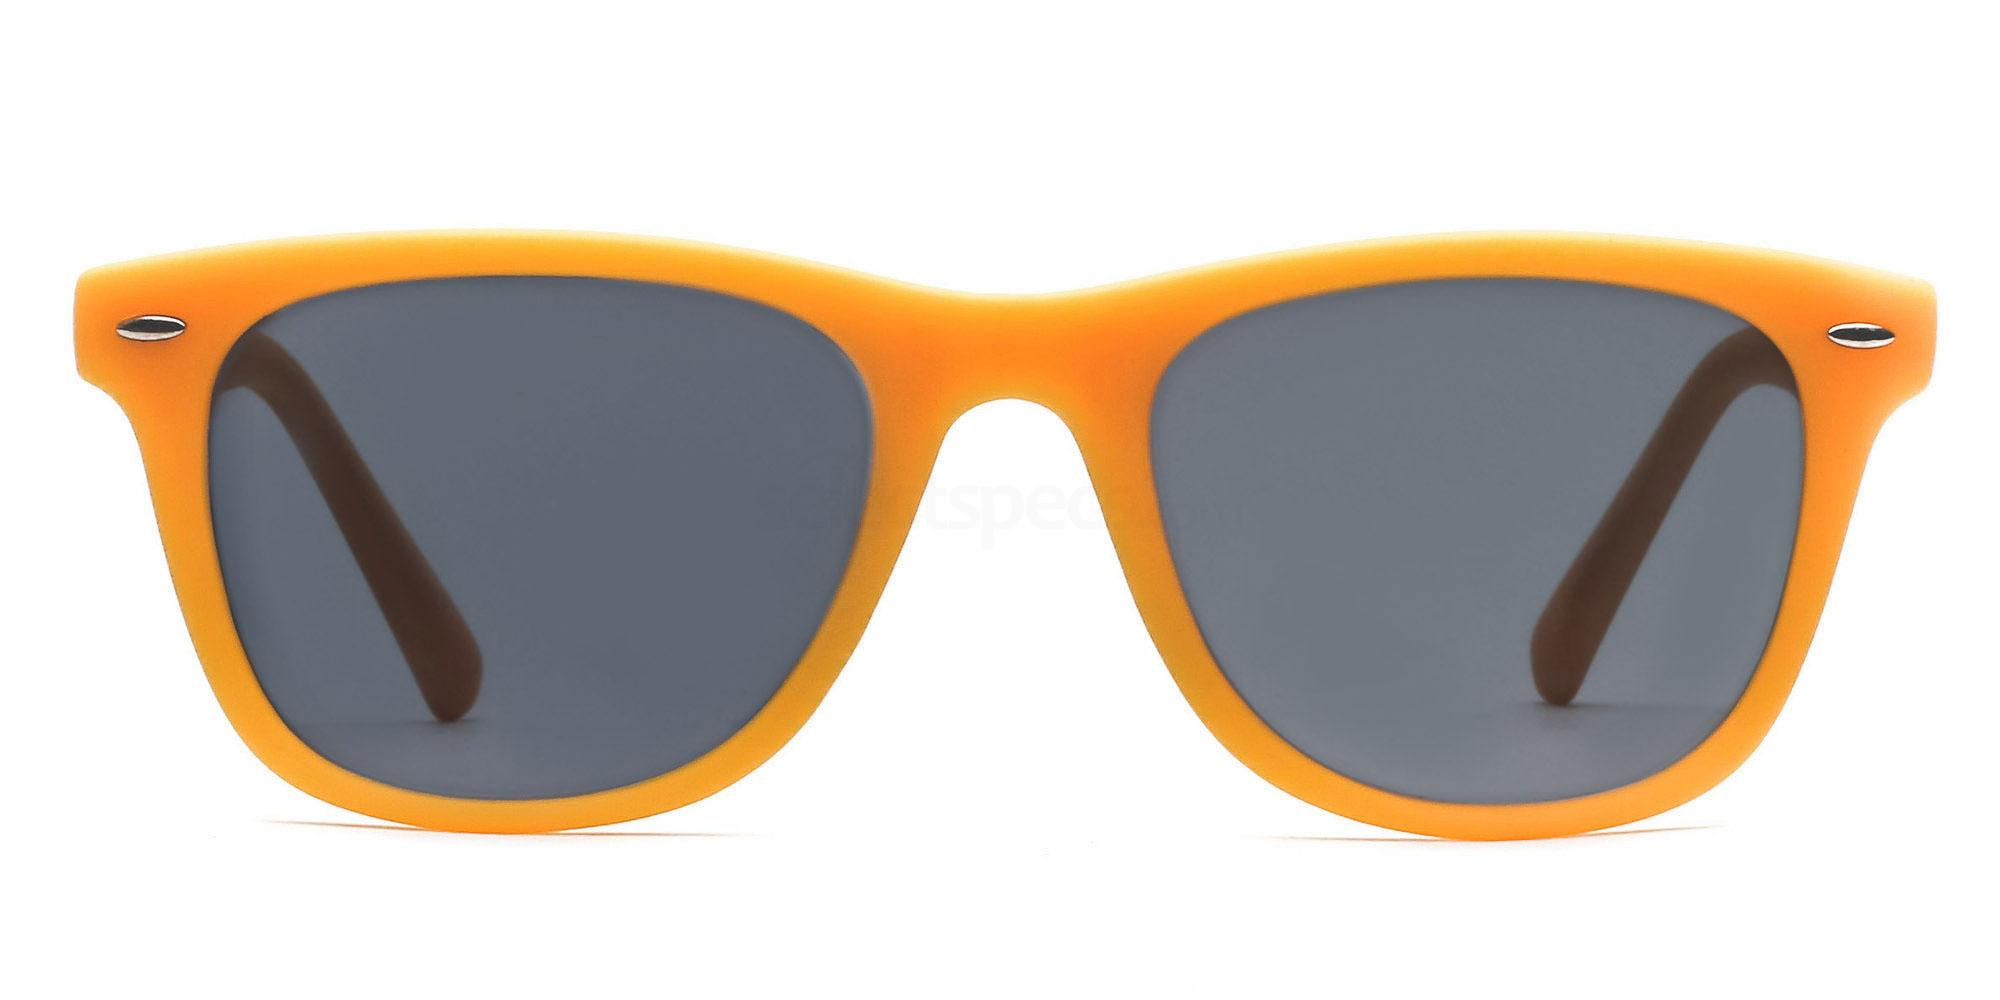 C2 8121 - Yellow (Sunglasses) , Savannah